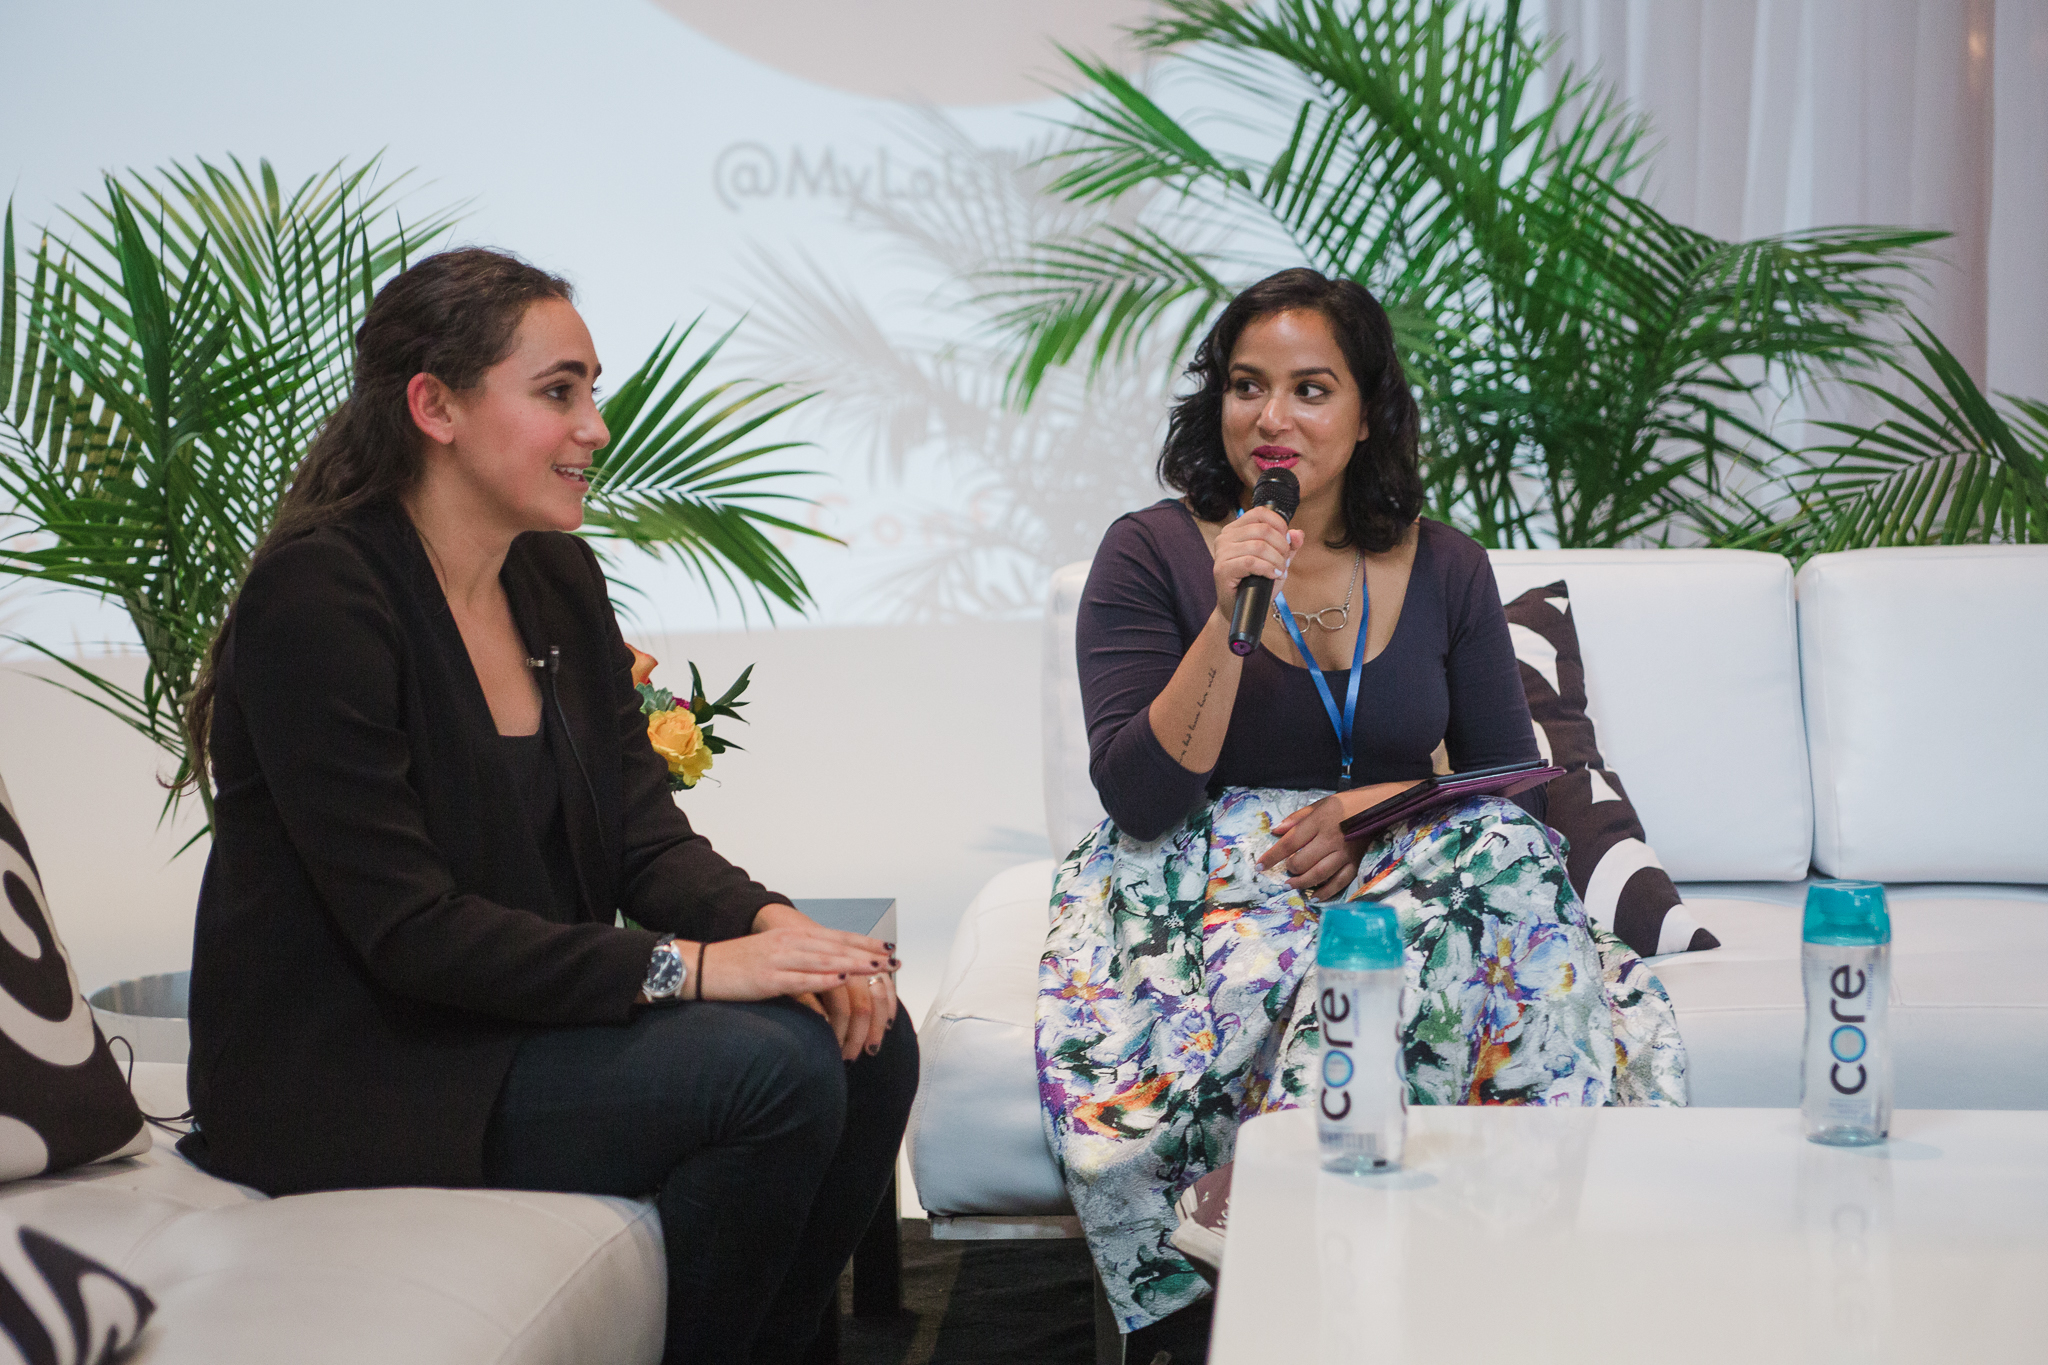 TheFearlessConference_Day2-64.jpg